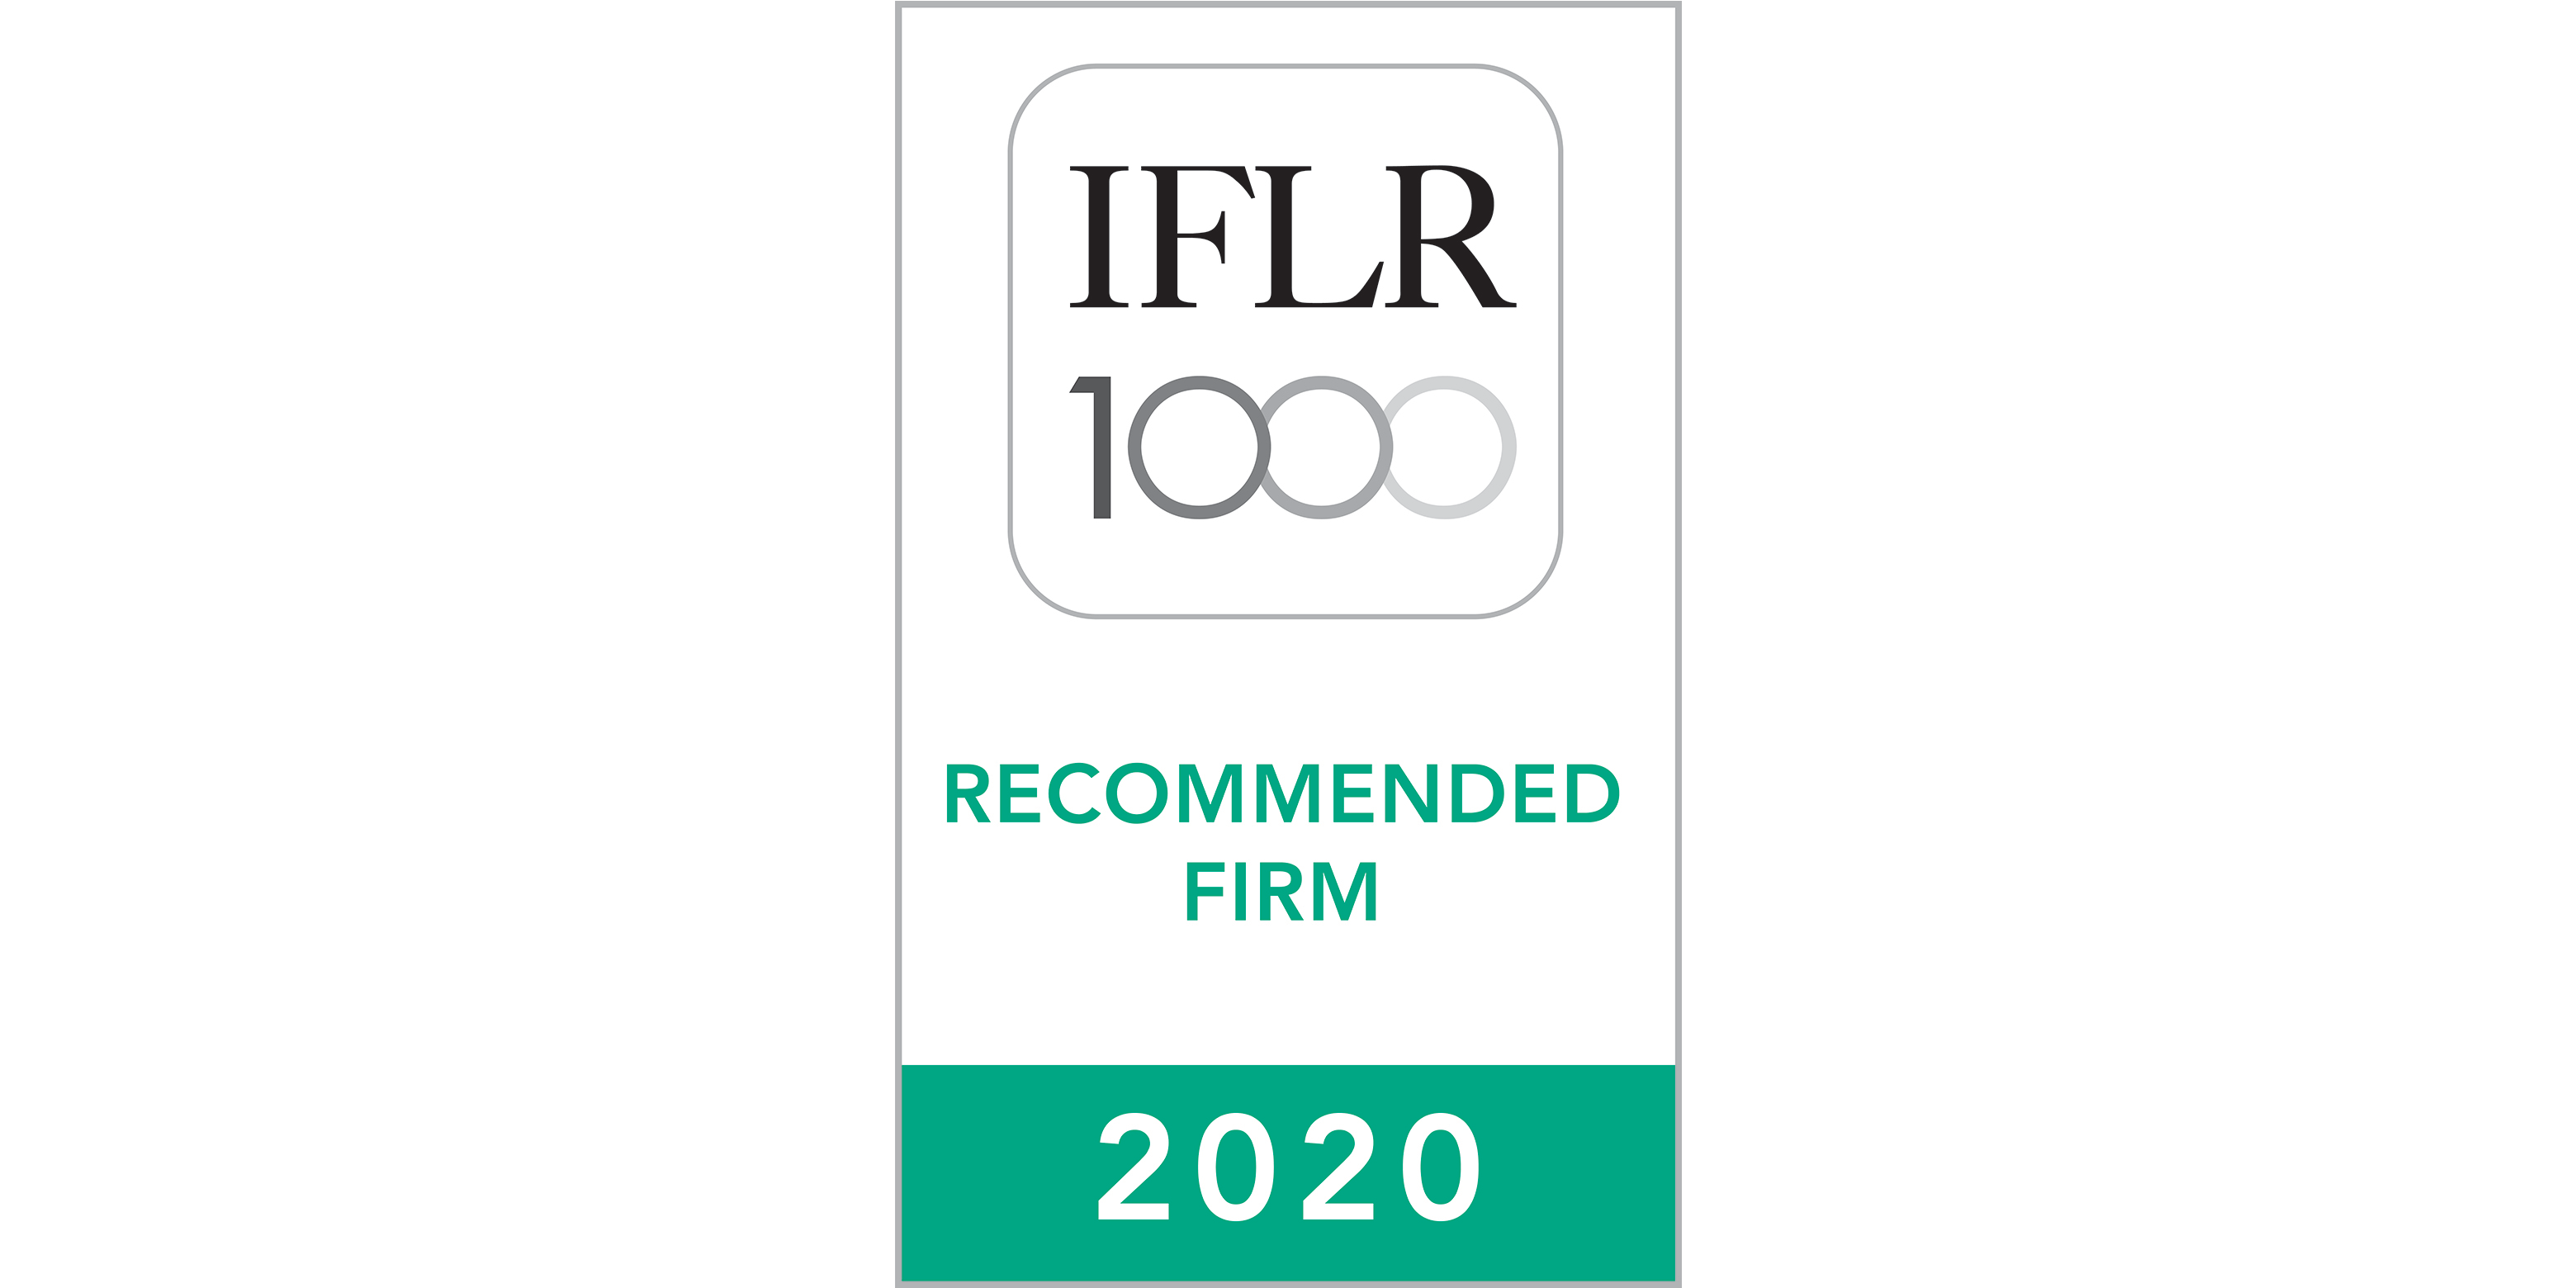 IFLR 1000 Recommended Firm 2020